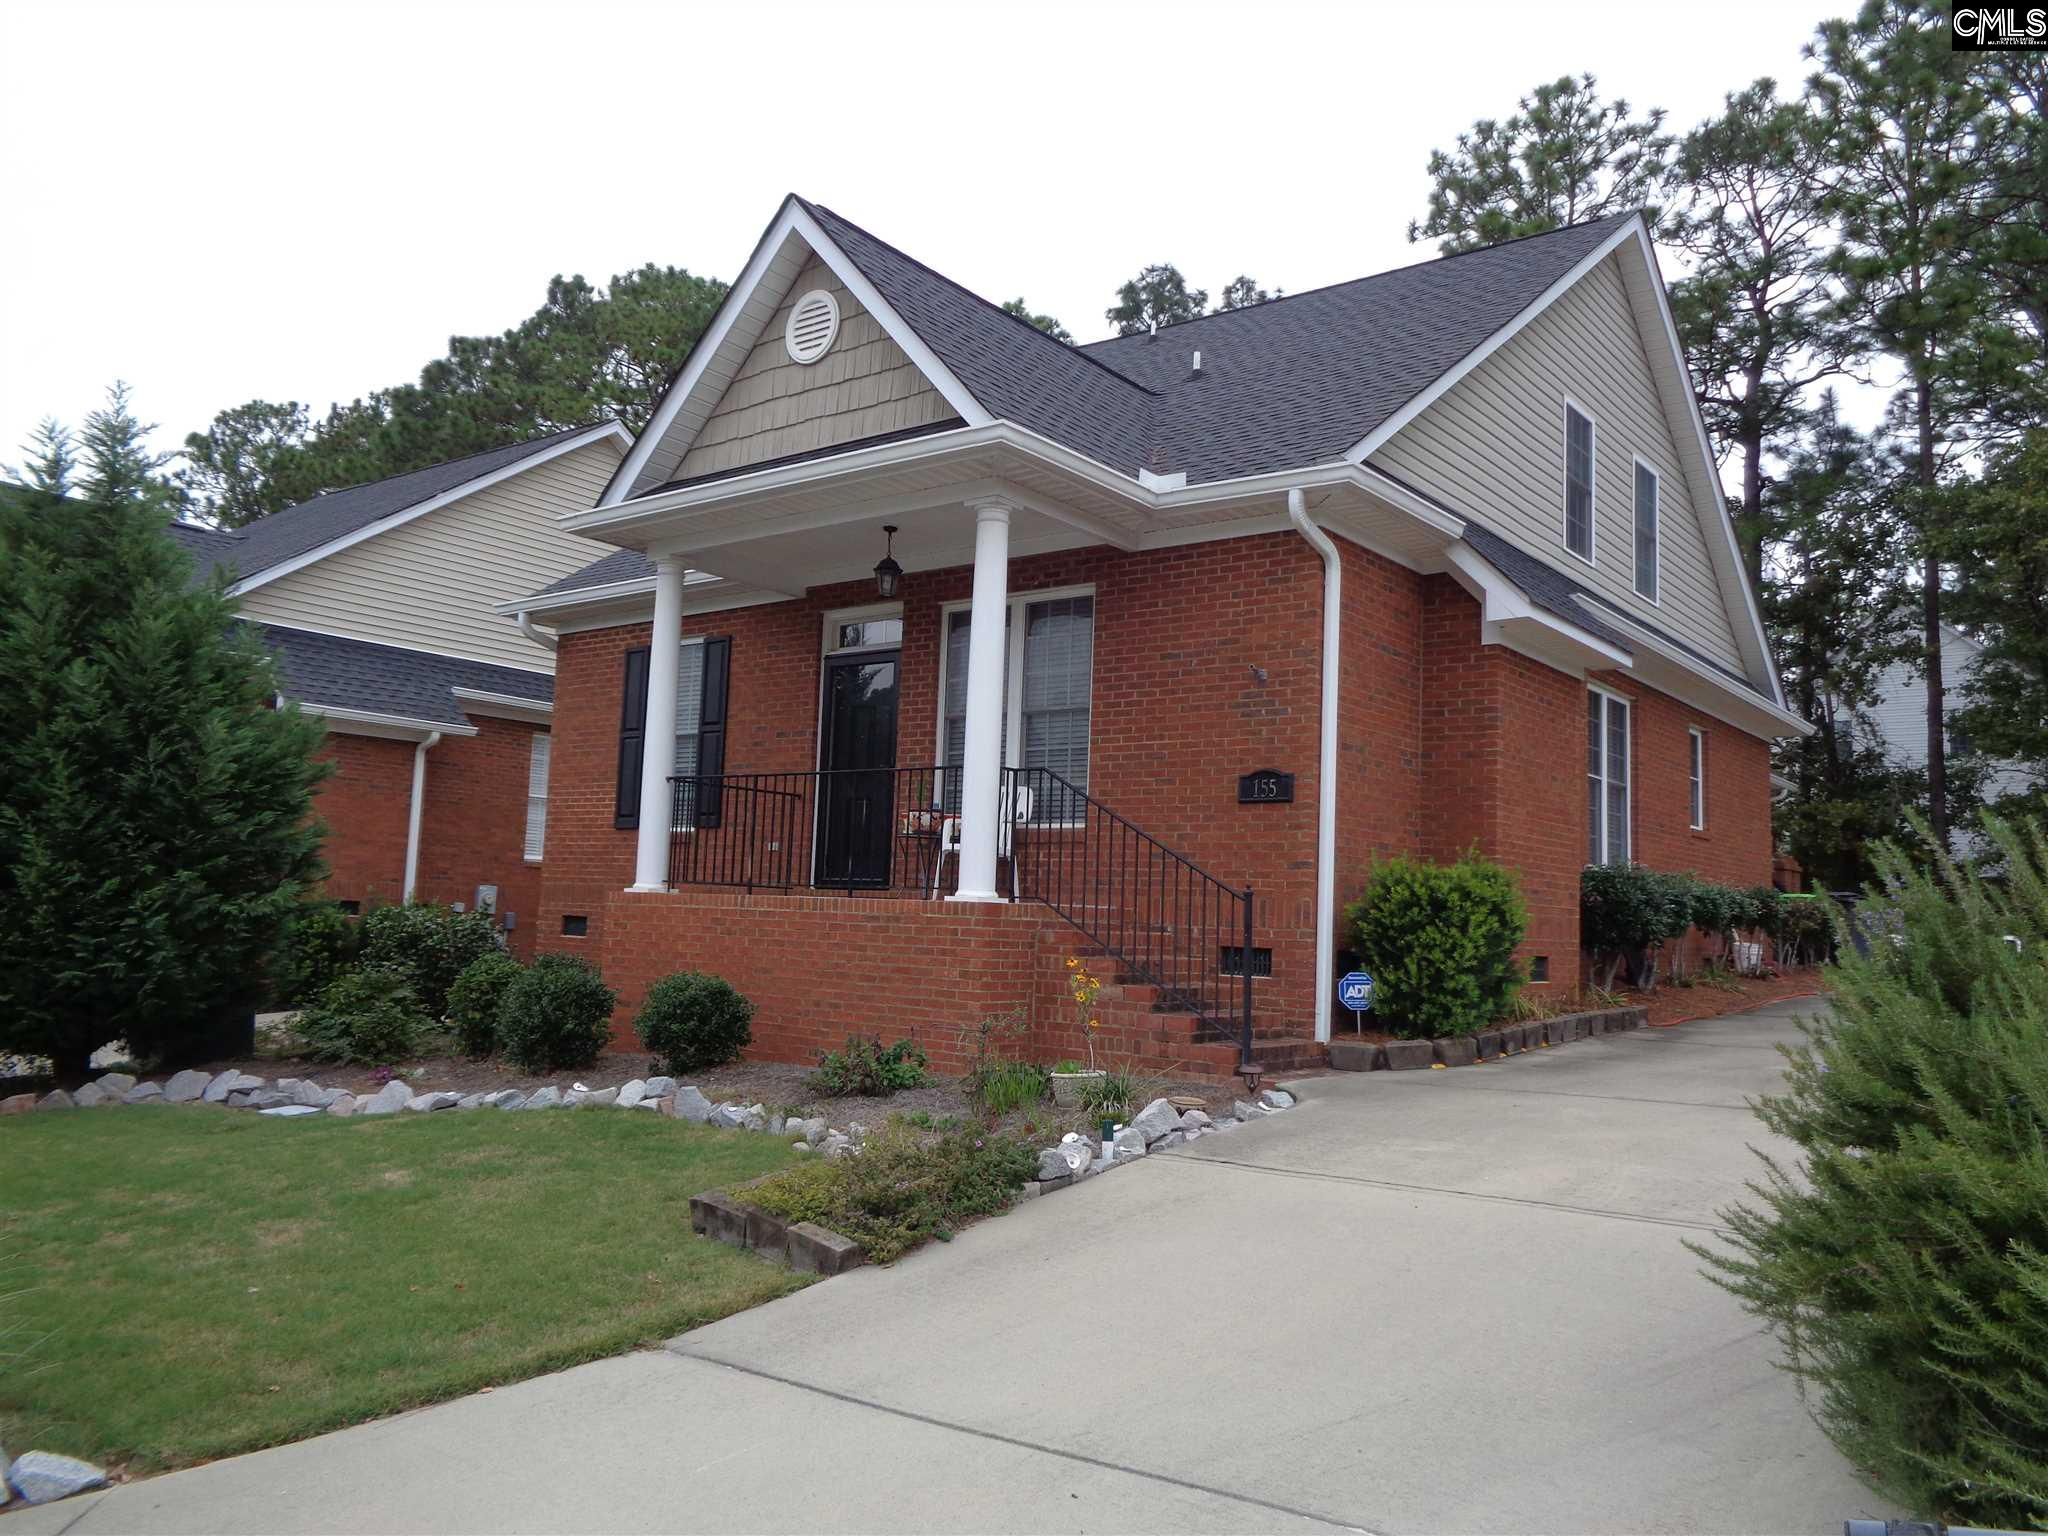 155 Long Iron West Columbia, SC 29172